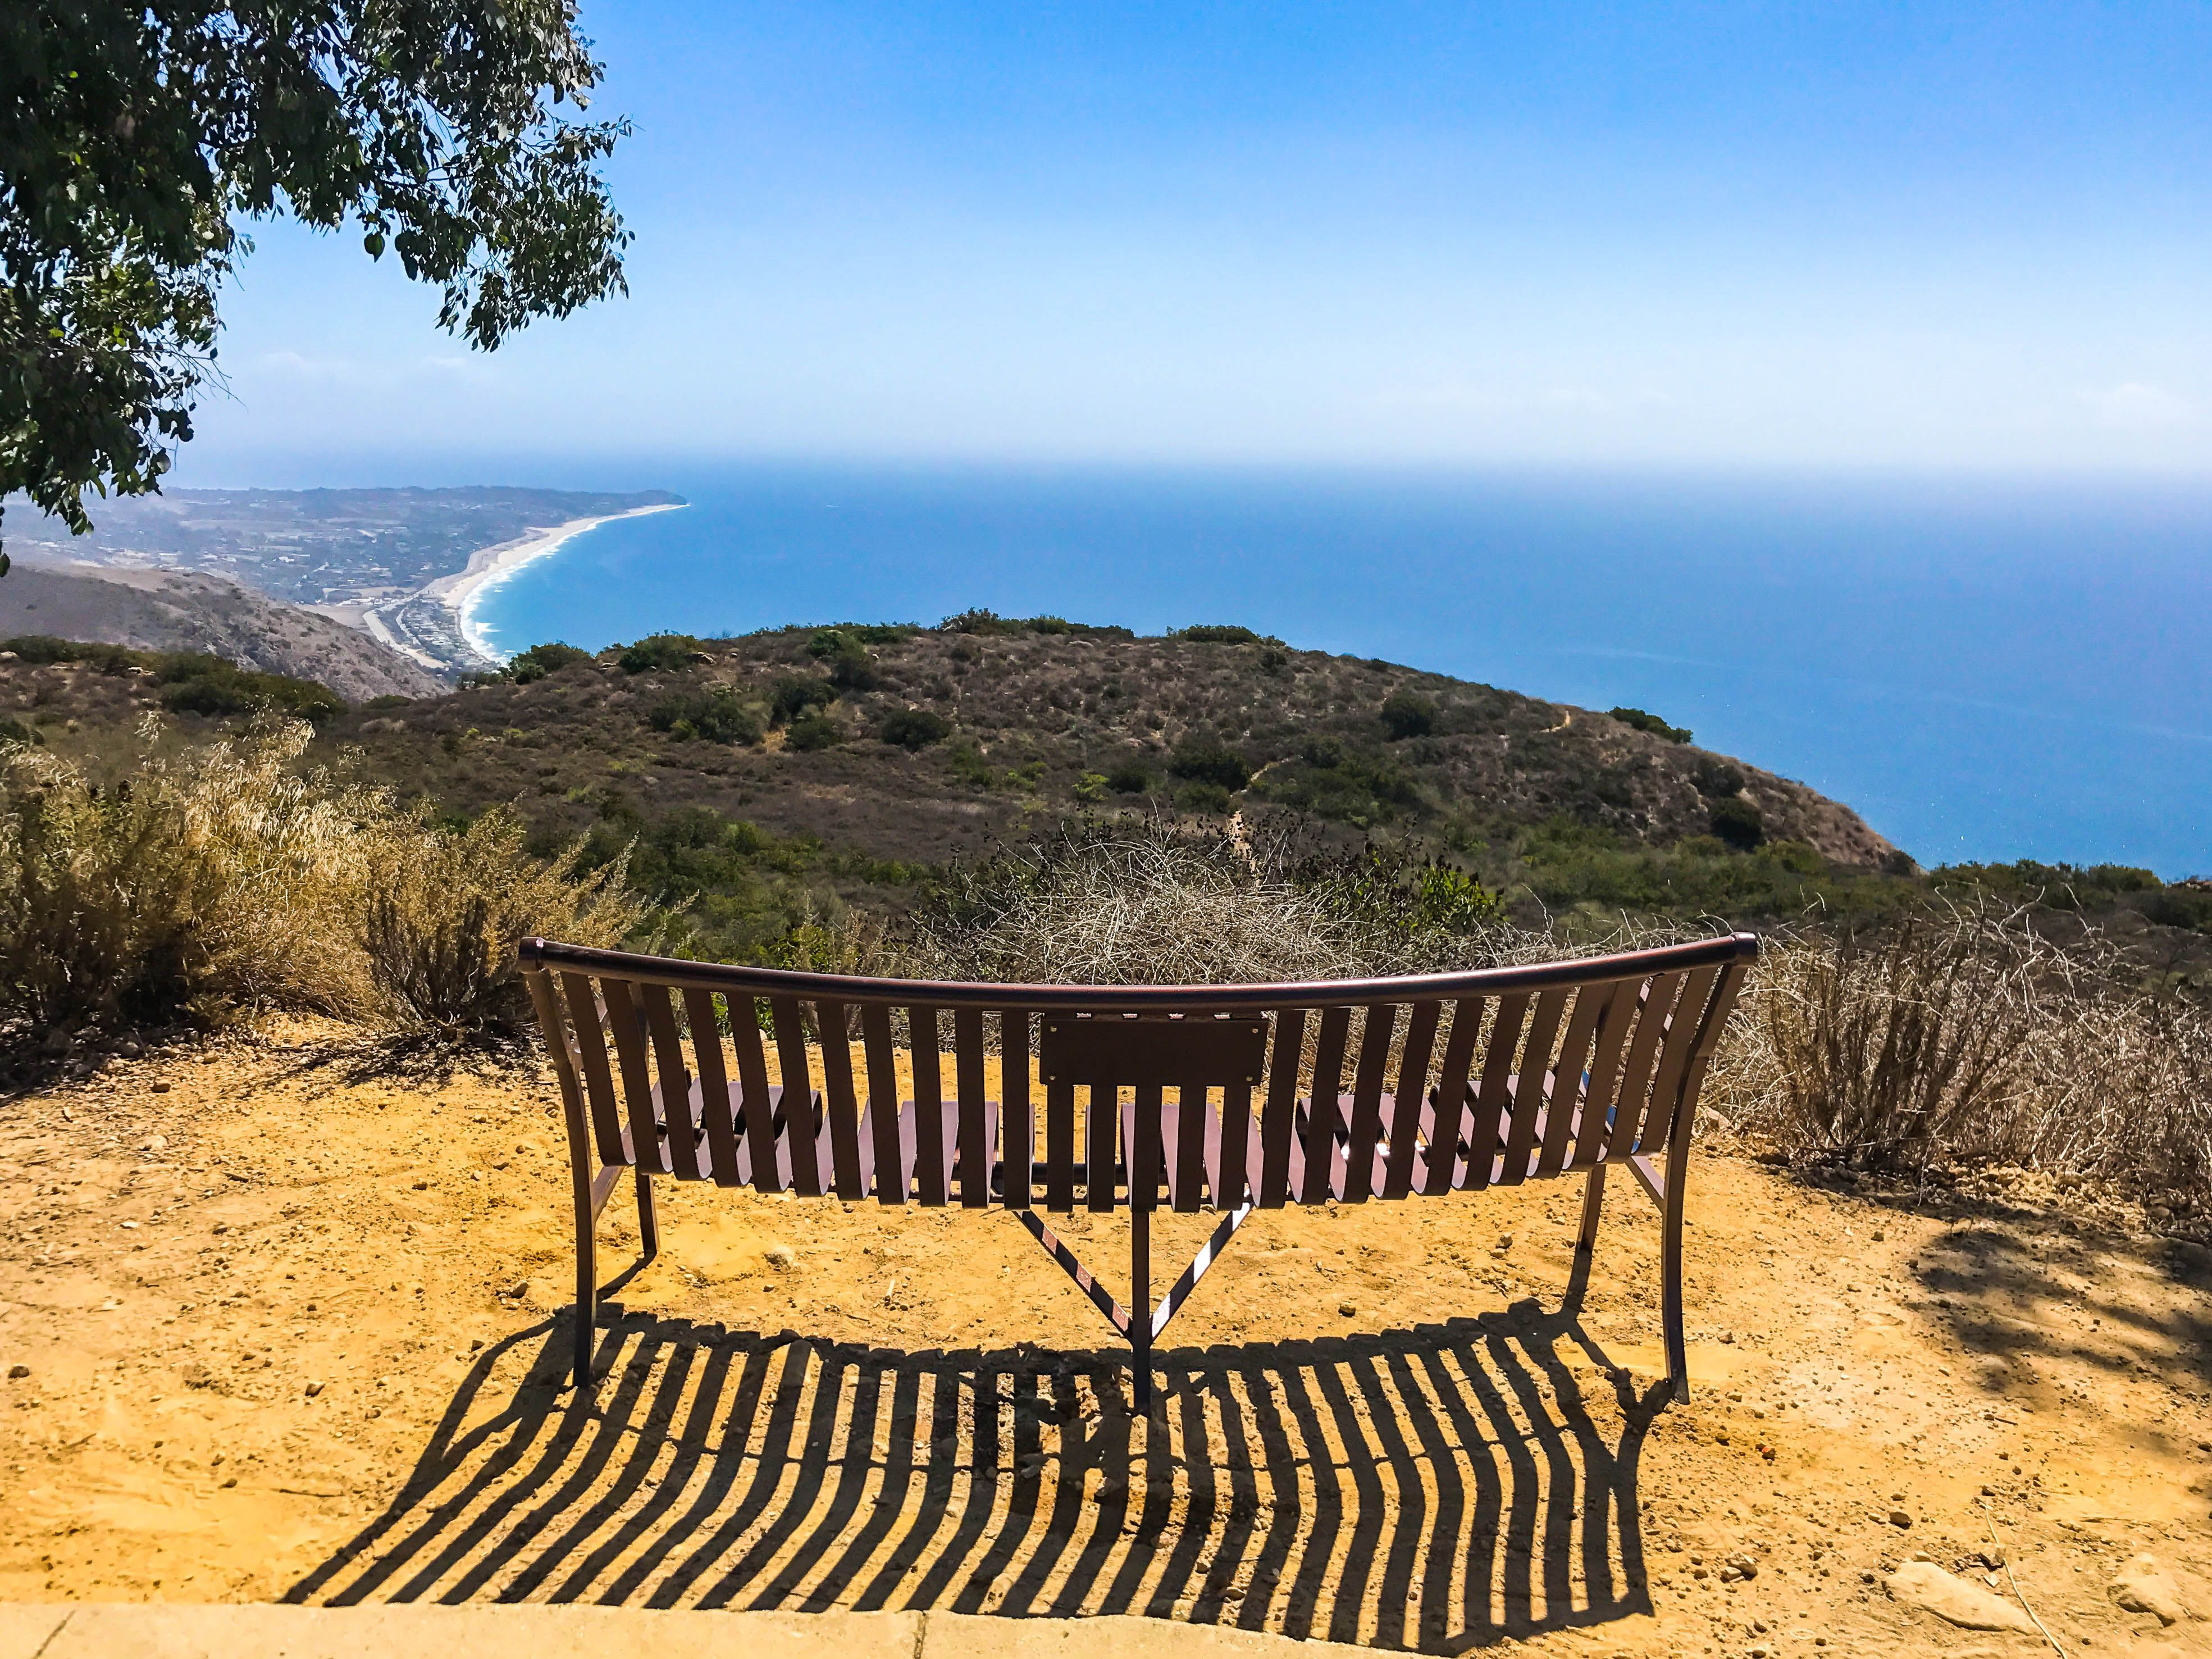 Views From The Bench In 2020 Landscape Design Memorial Benches Ocean View